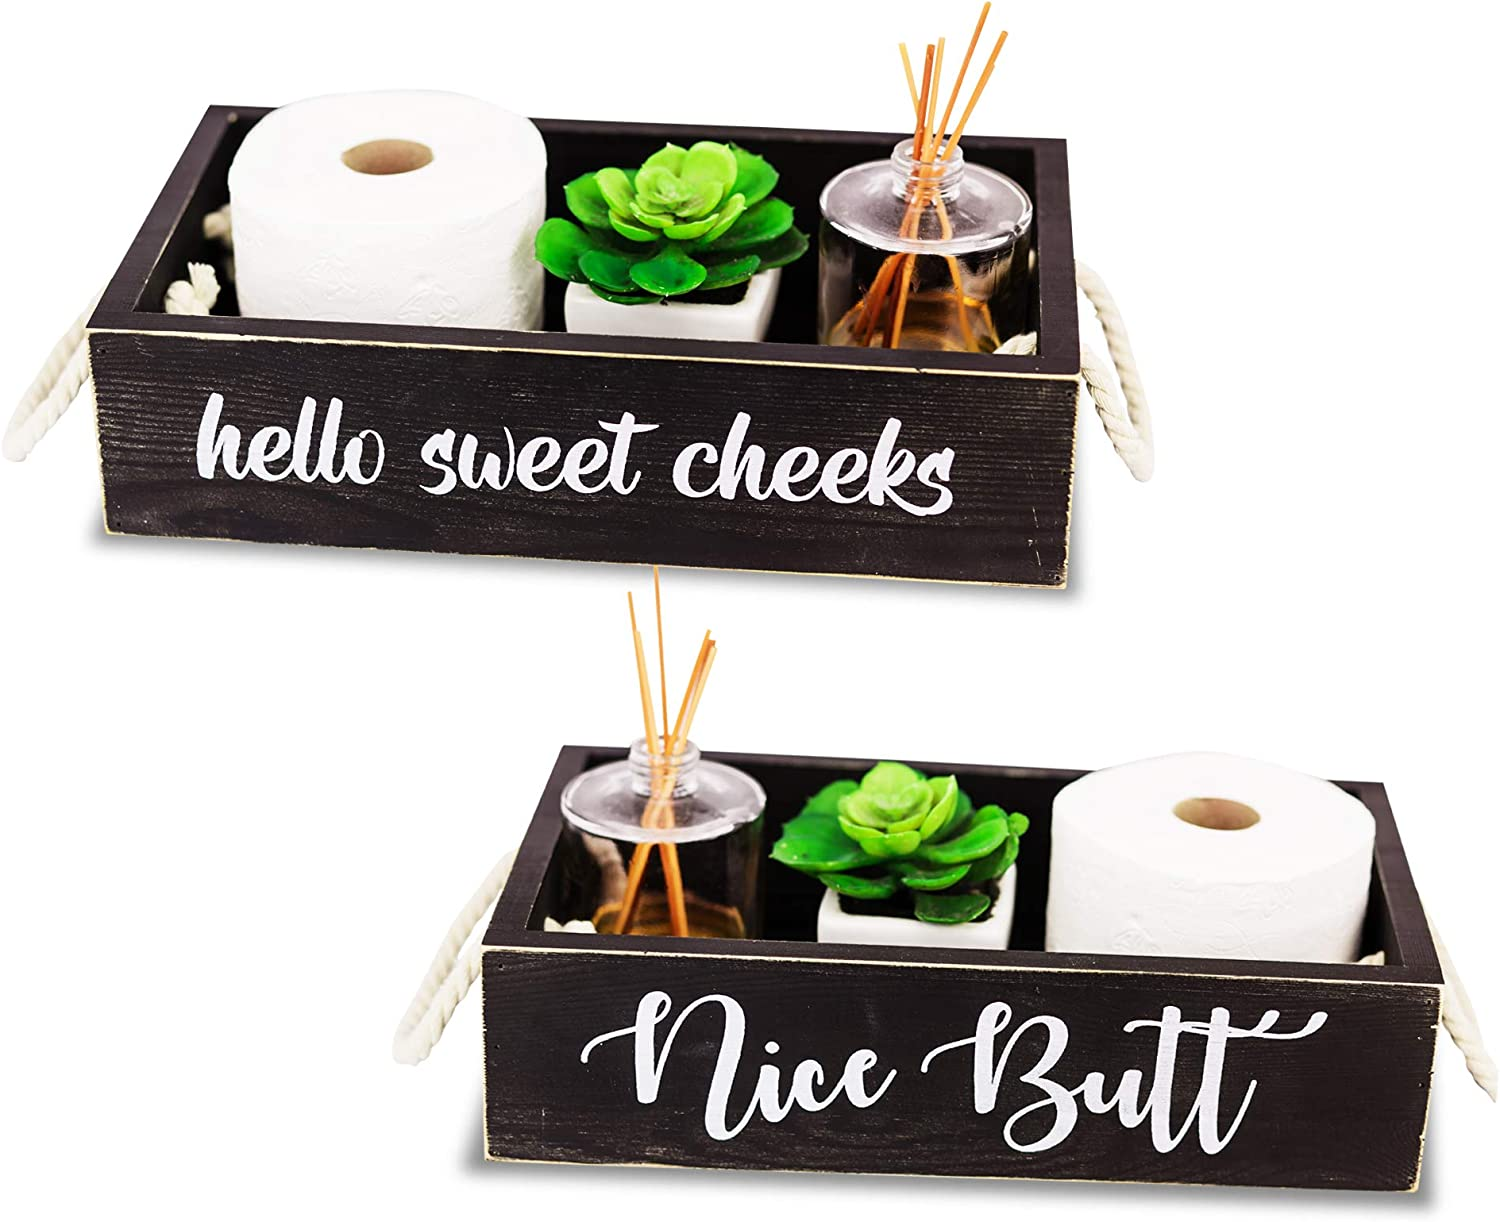 Nice Butt Bathroom Decor Box, 2 Sides Funny Saying Toilet Paper Holder - Rustic Farmhouse Wooden Decoration Tray for Portable Counter Storage, Baby Diaper Caddy, Tissues Organizer and Gifts (Black)